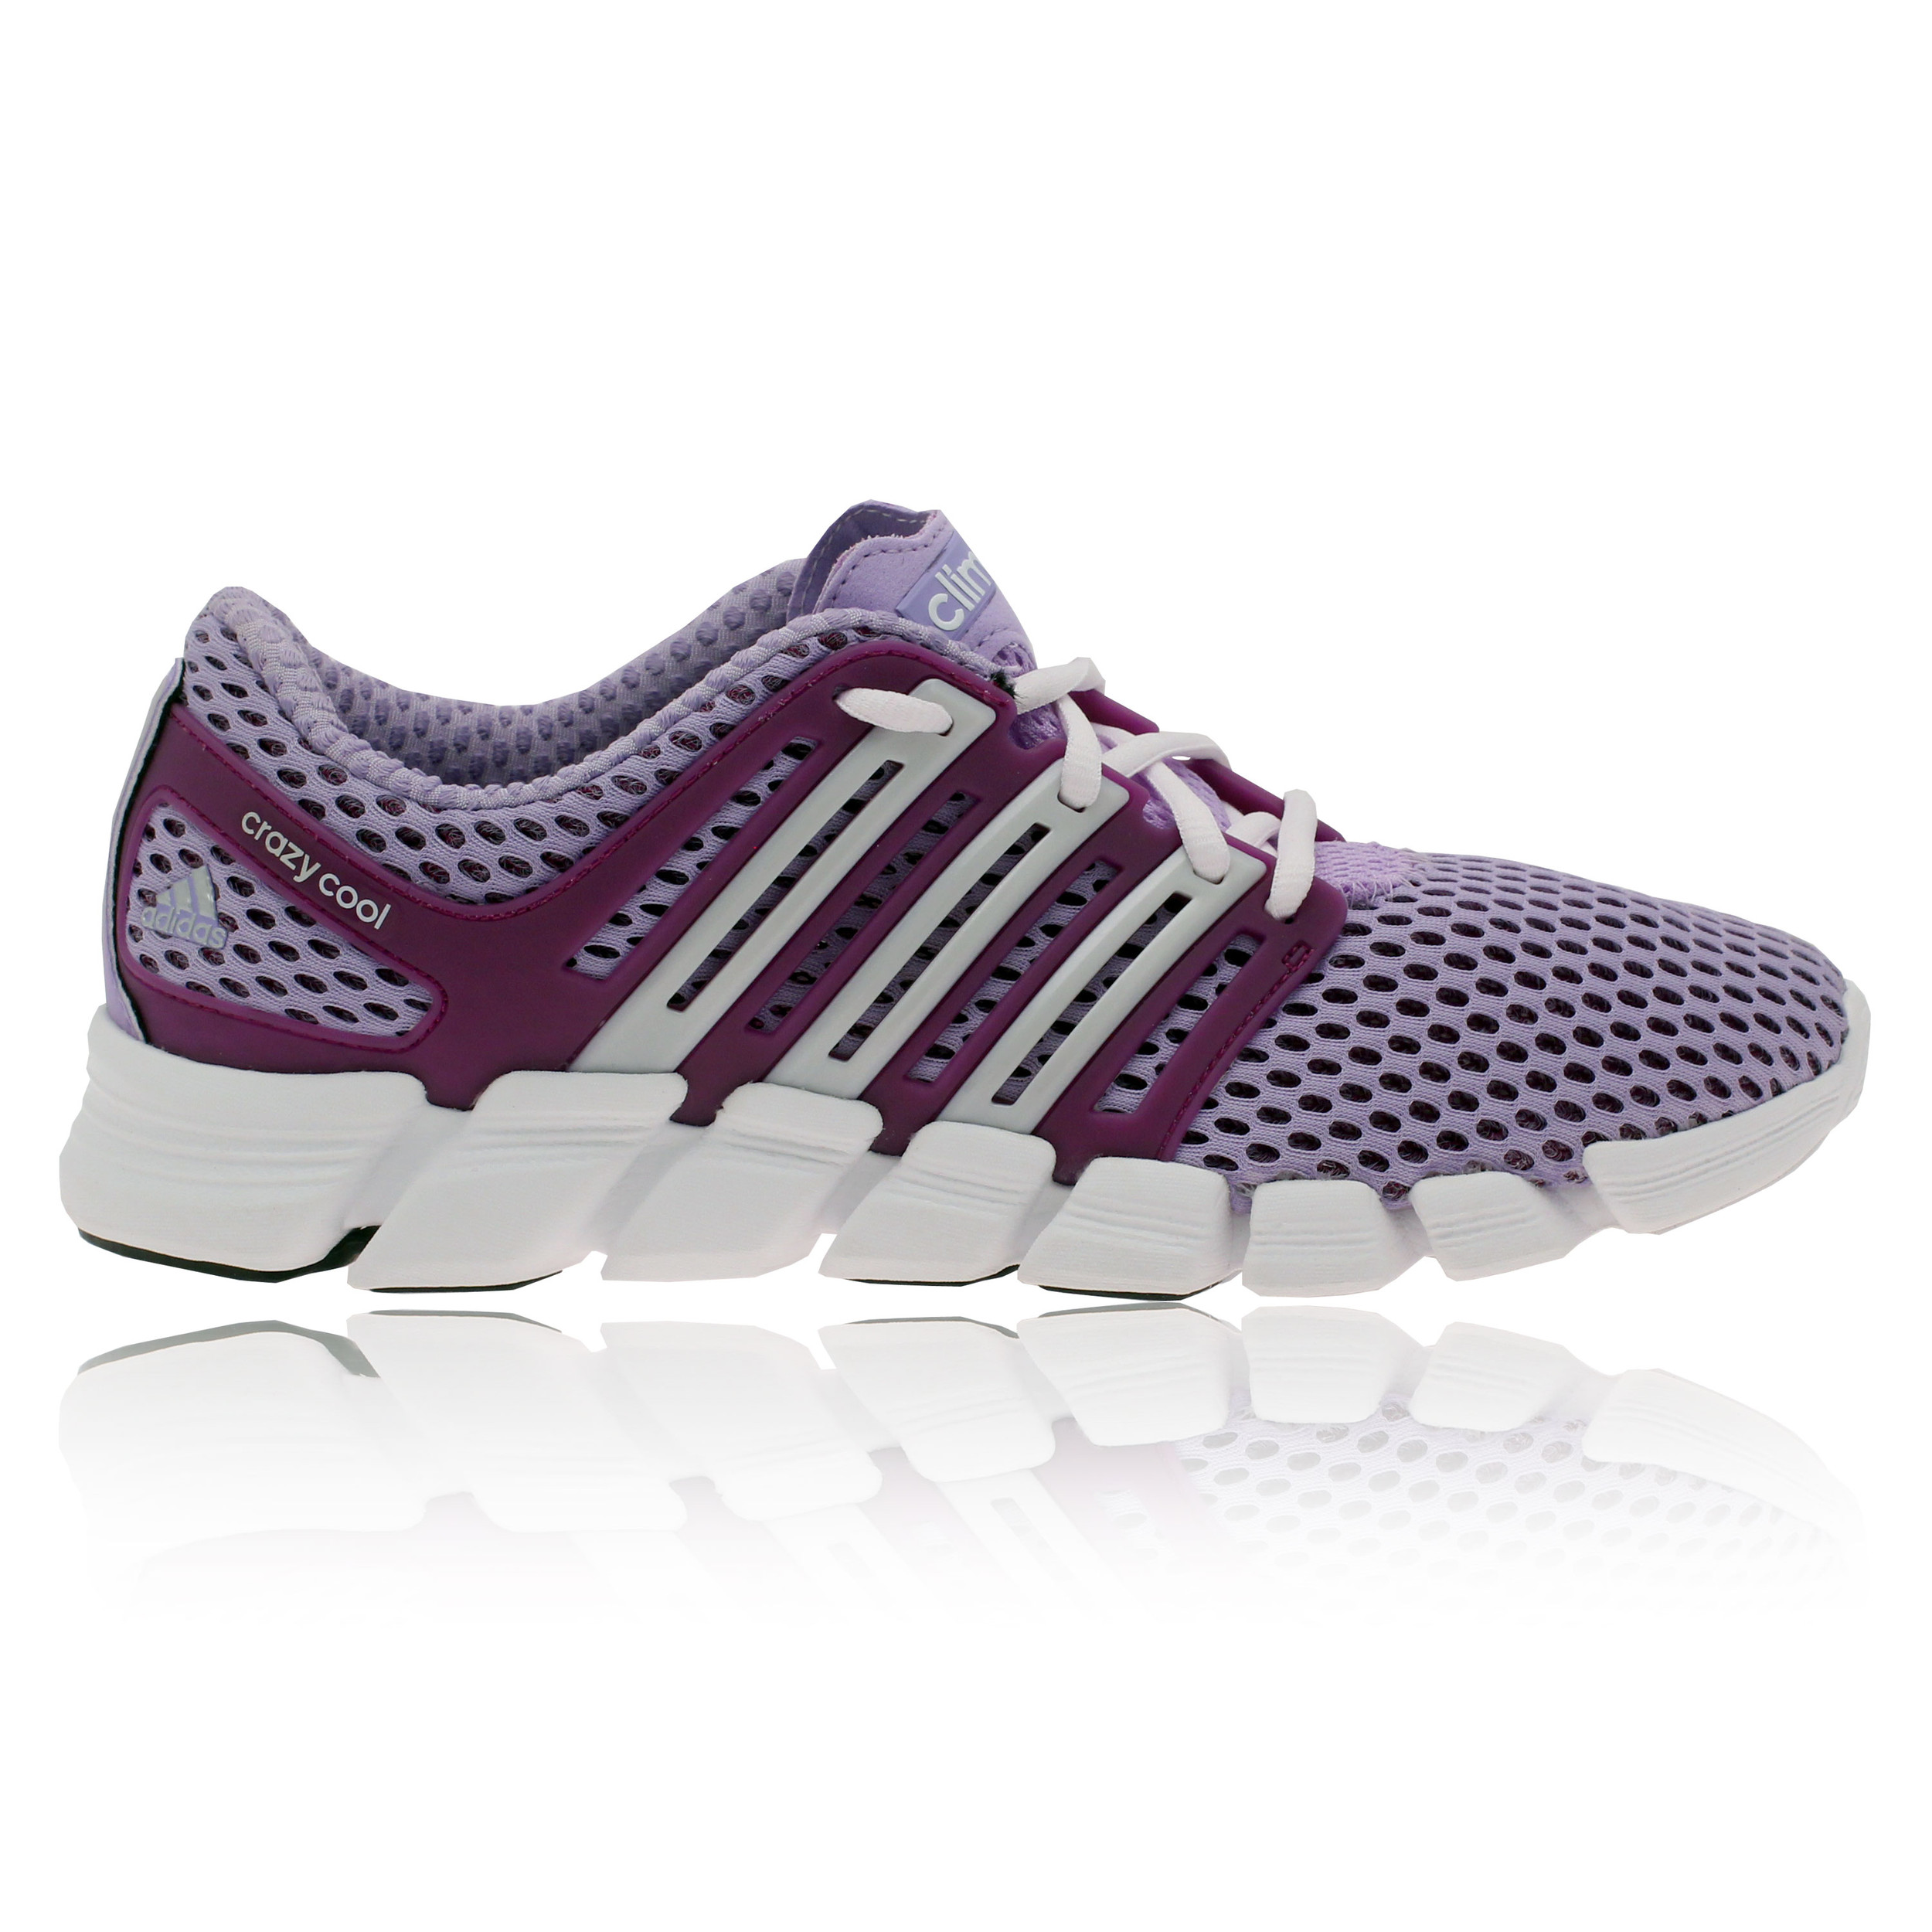 Adidas Cc Ride Womens Training Shoes